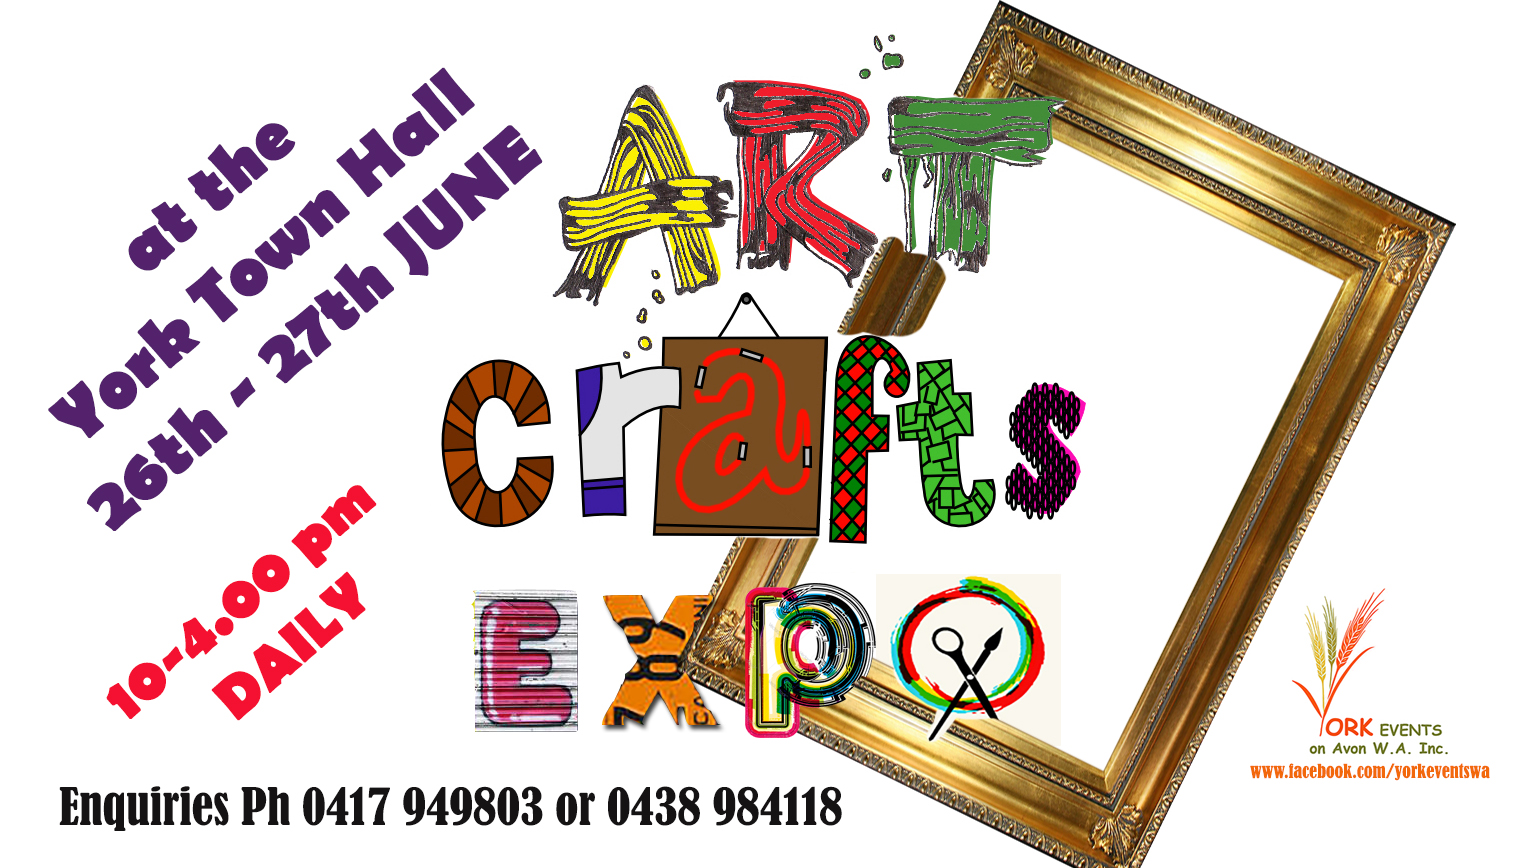 ART and CRAFTS EXPO